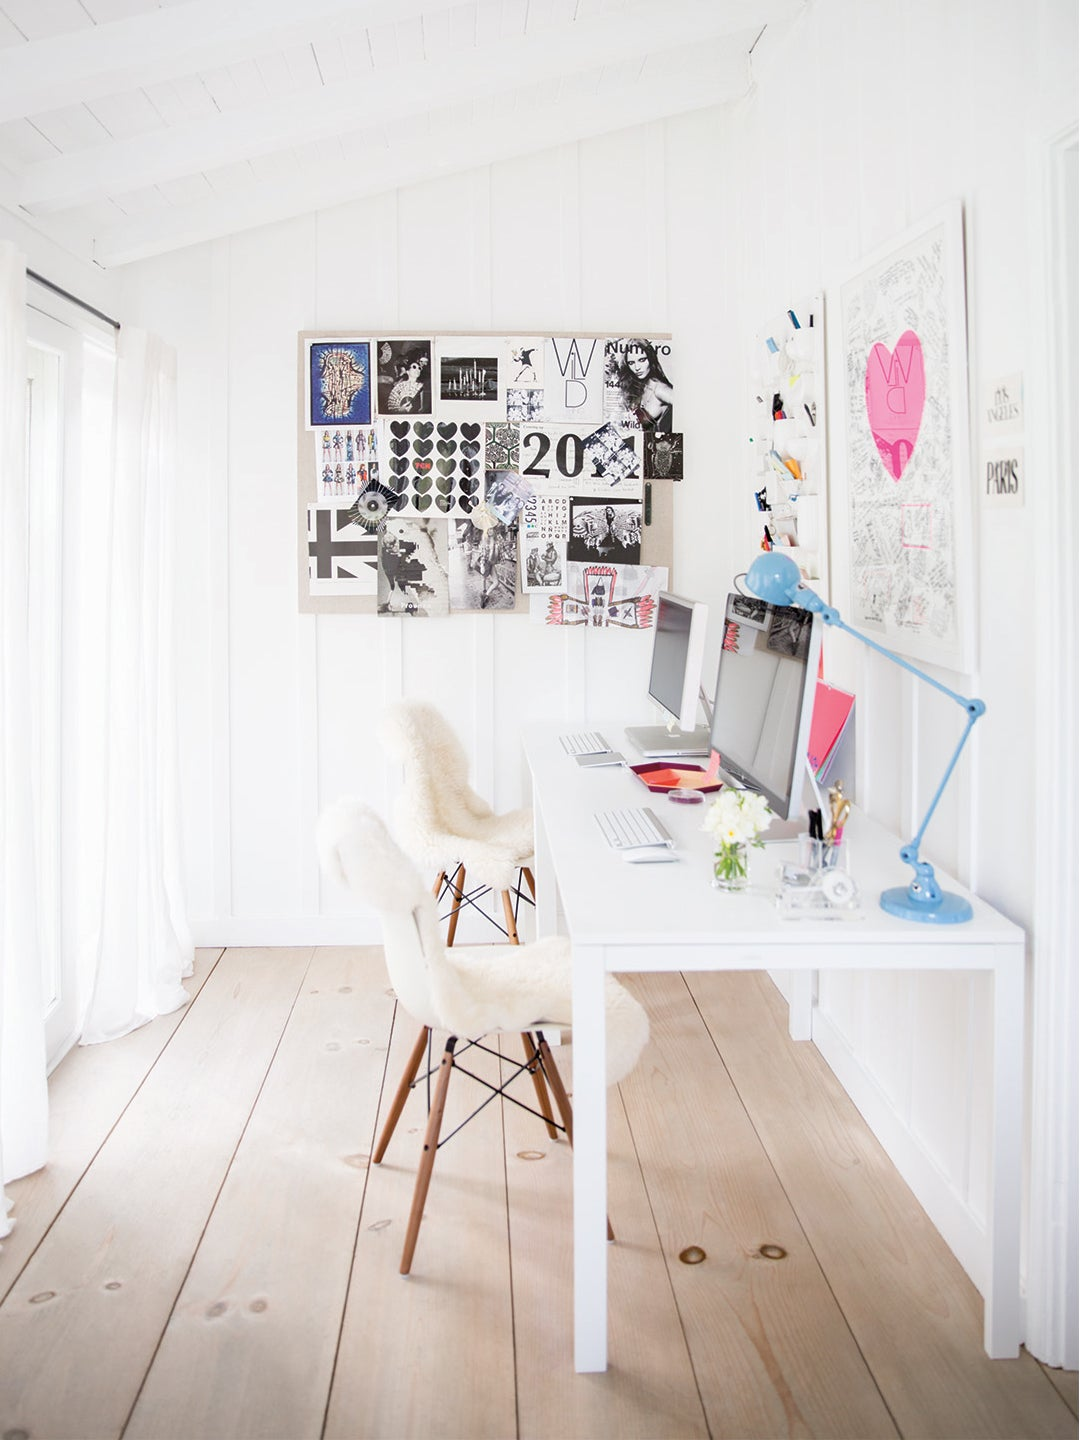 work-from-home-playlists-domino